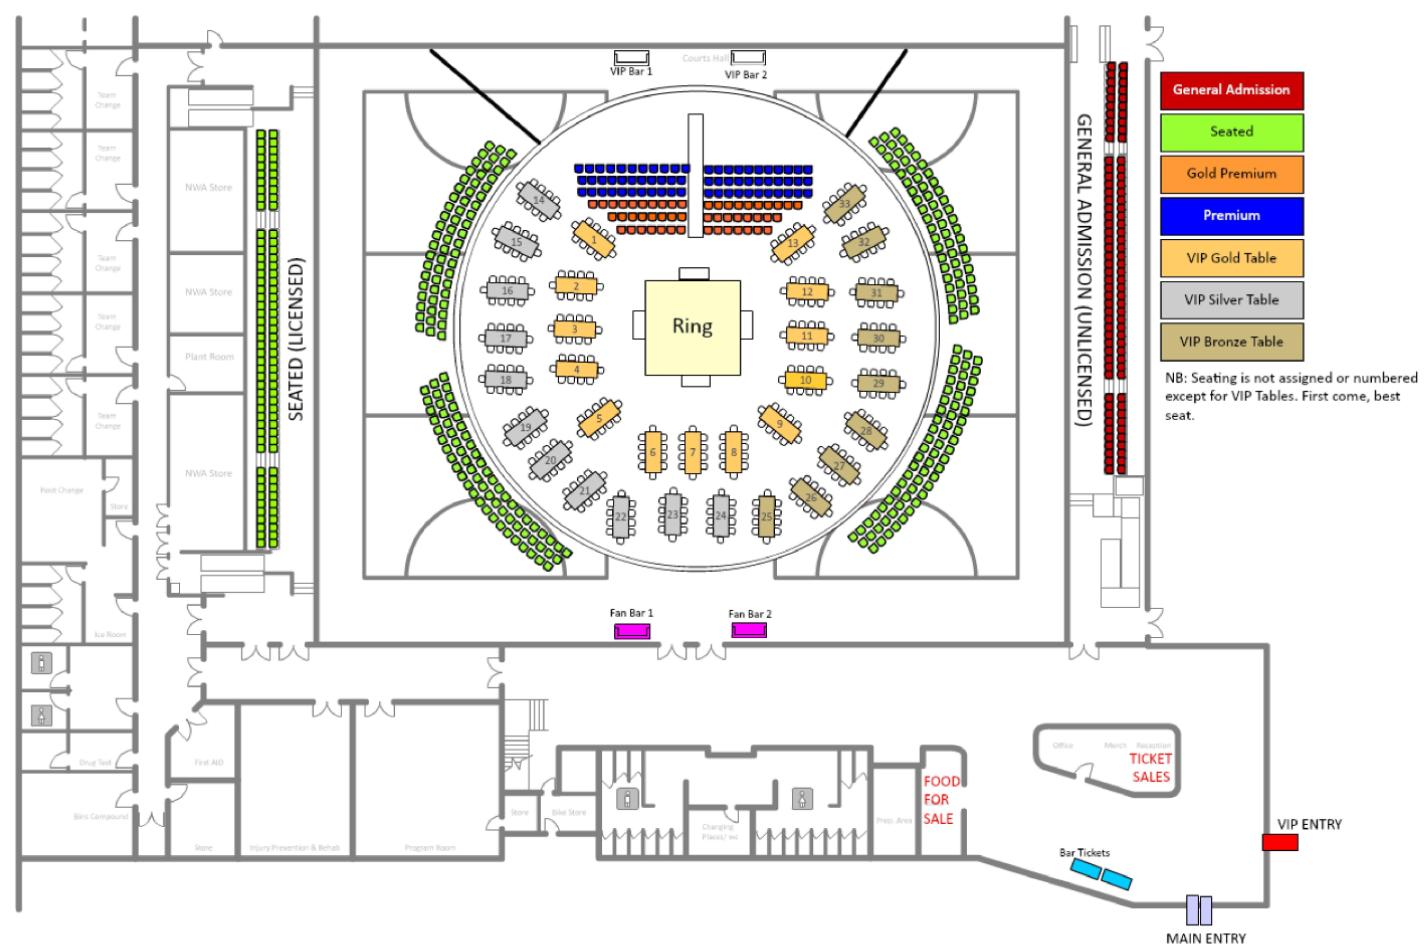 Bragging Rights Seating Chart